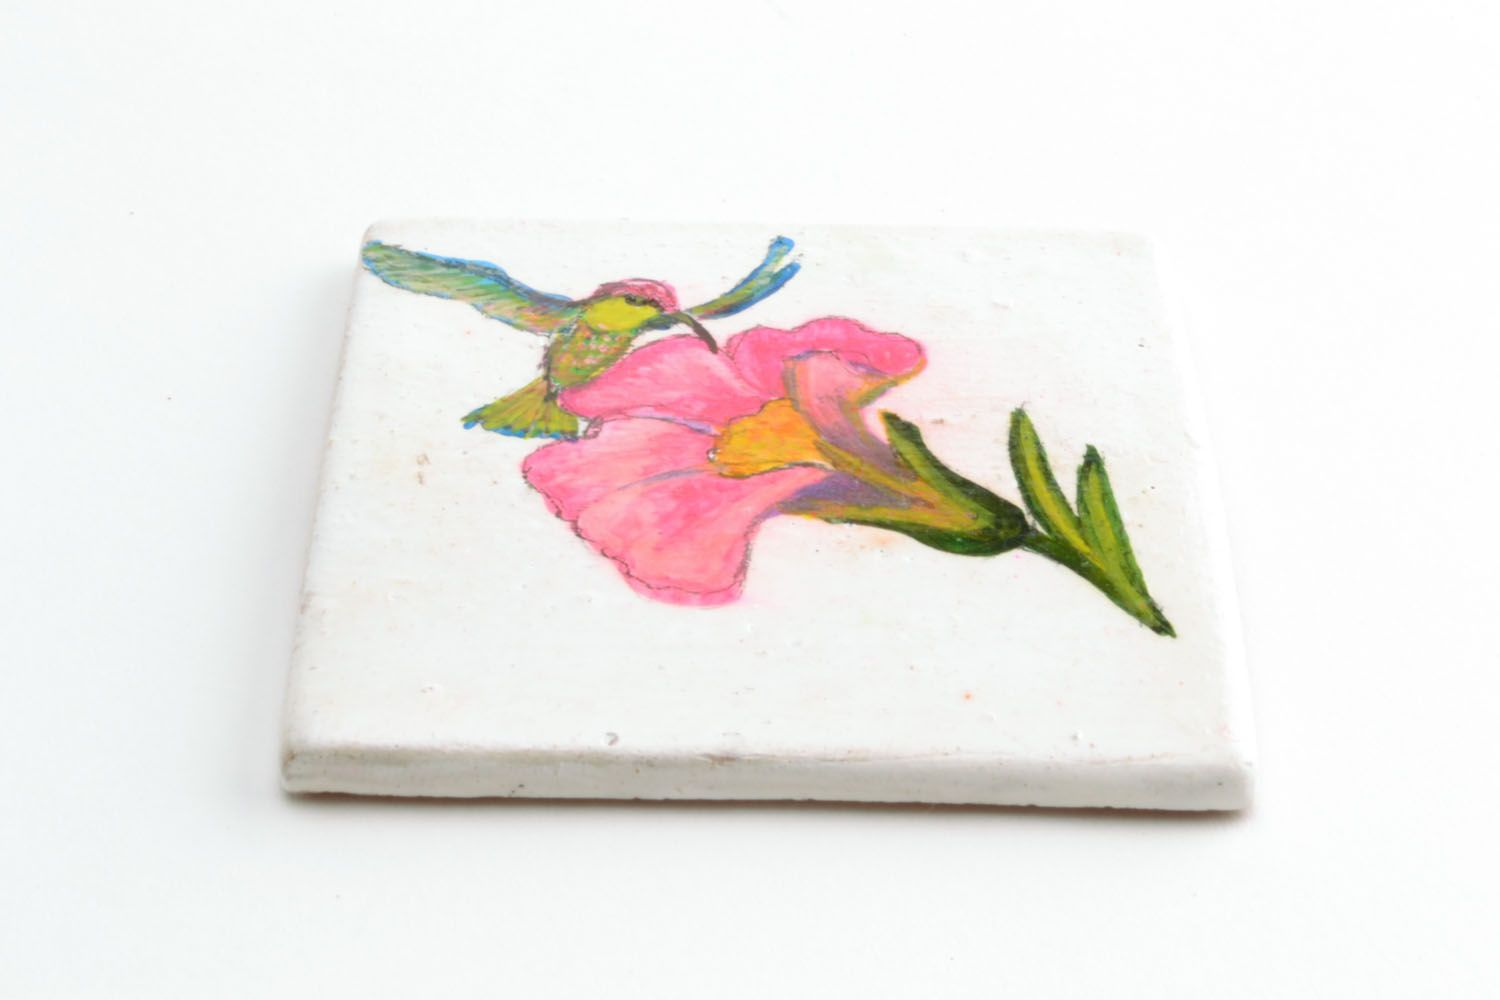 Homemade ceramic fridge magnet photo 3